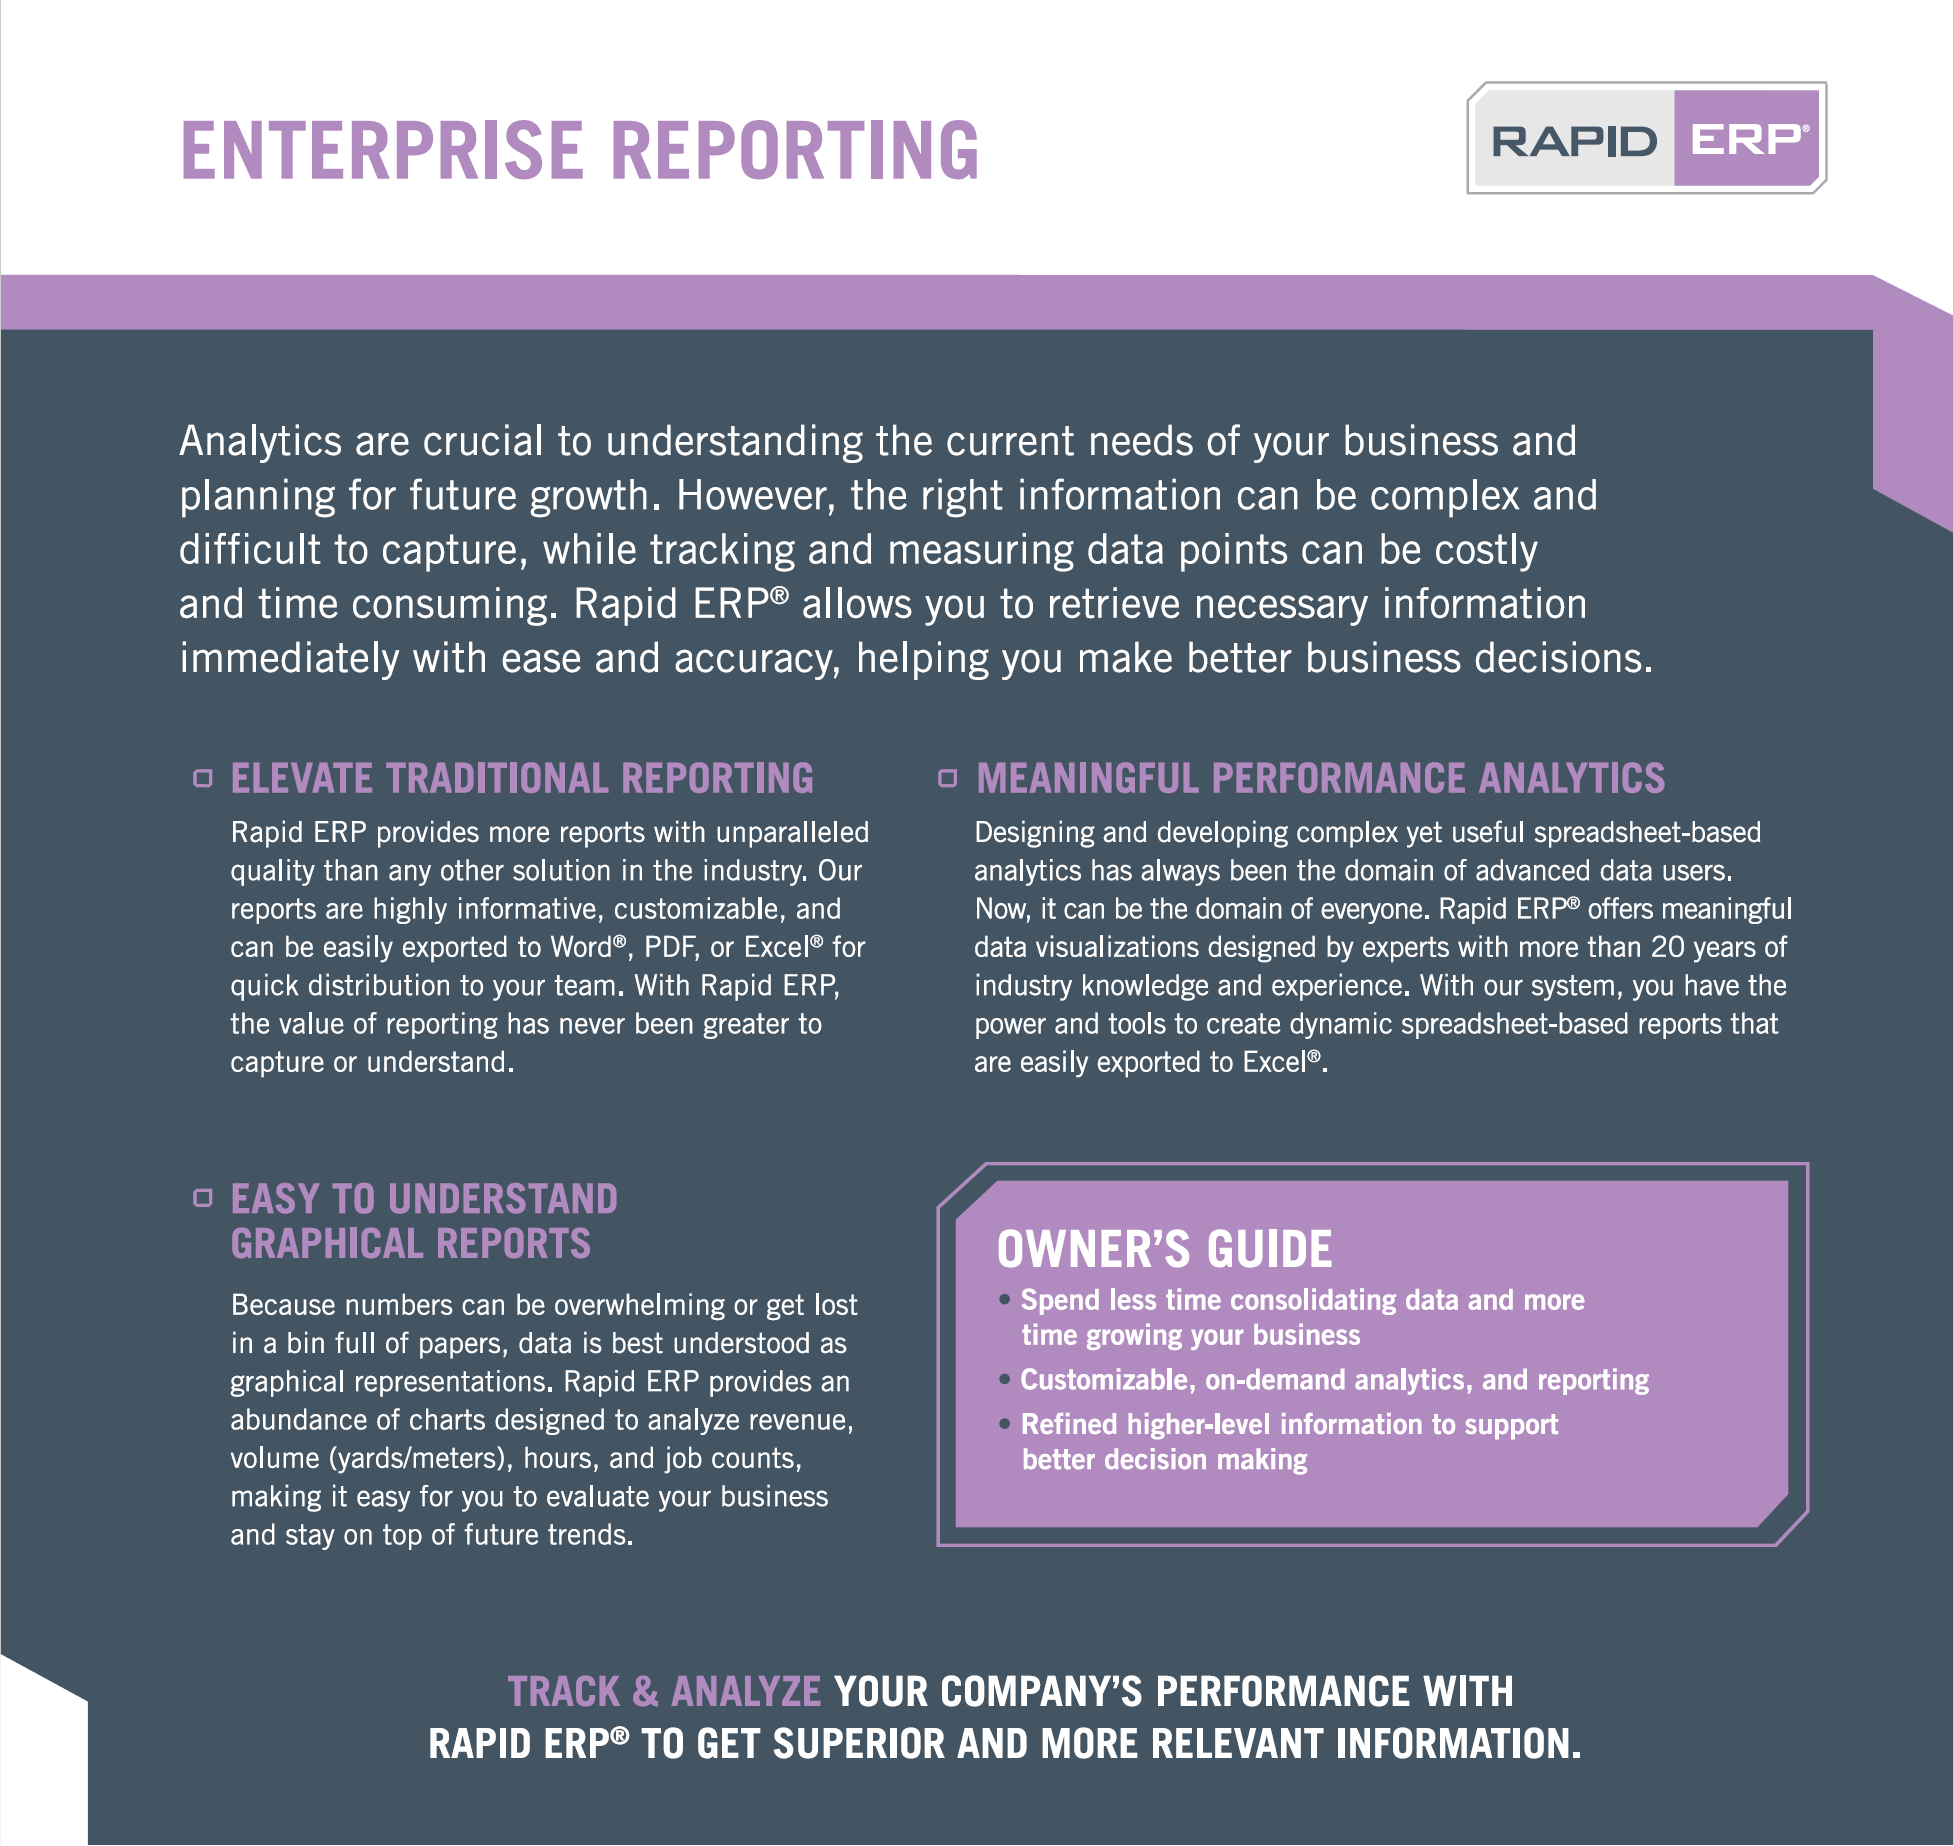 Rapid ERP - Enterprise Reporting